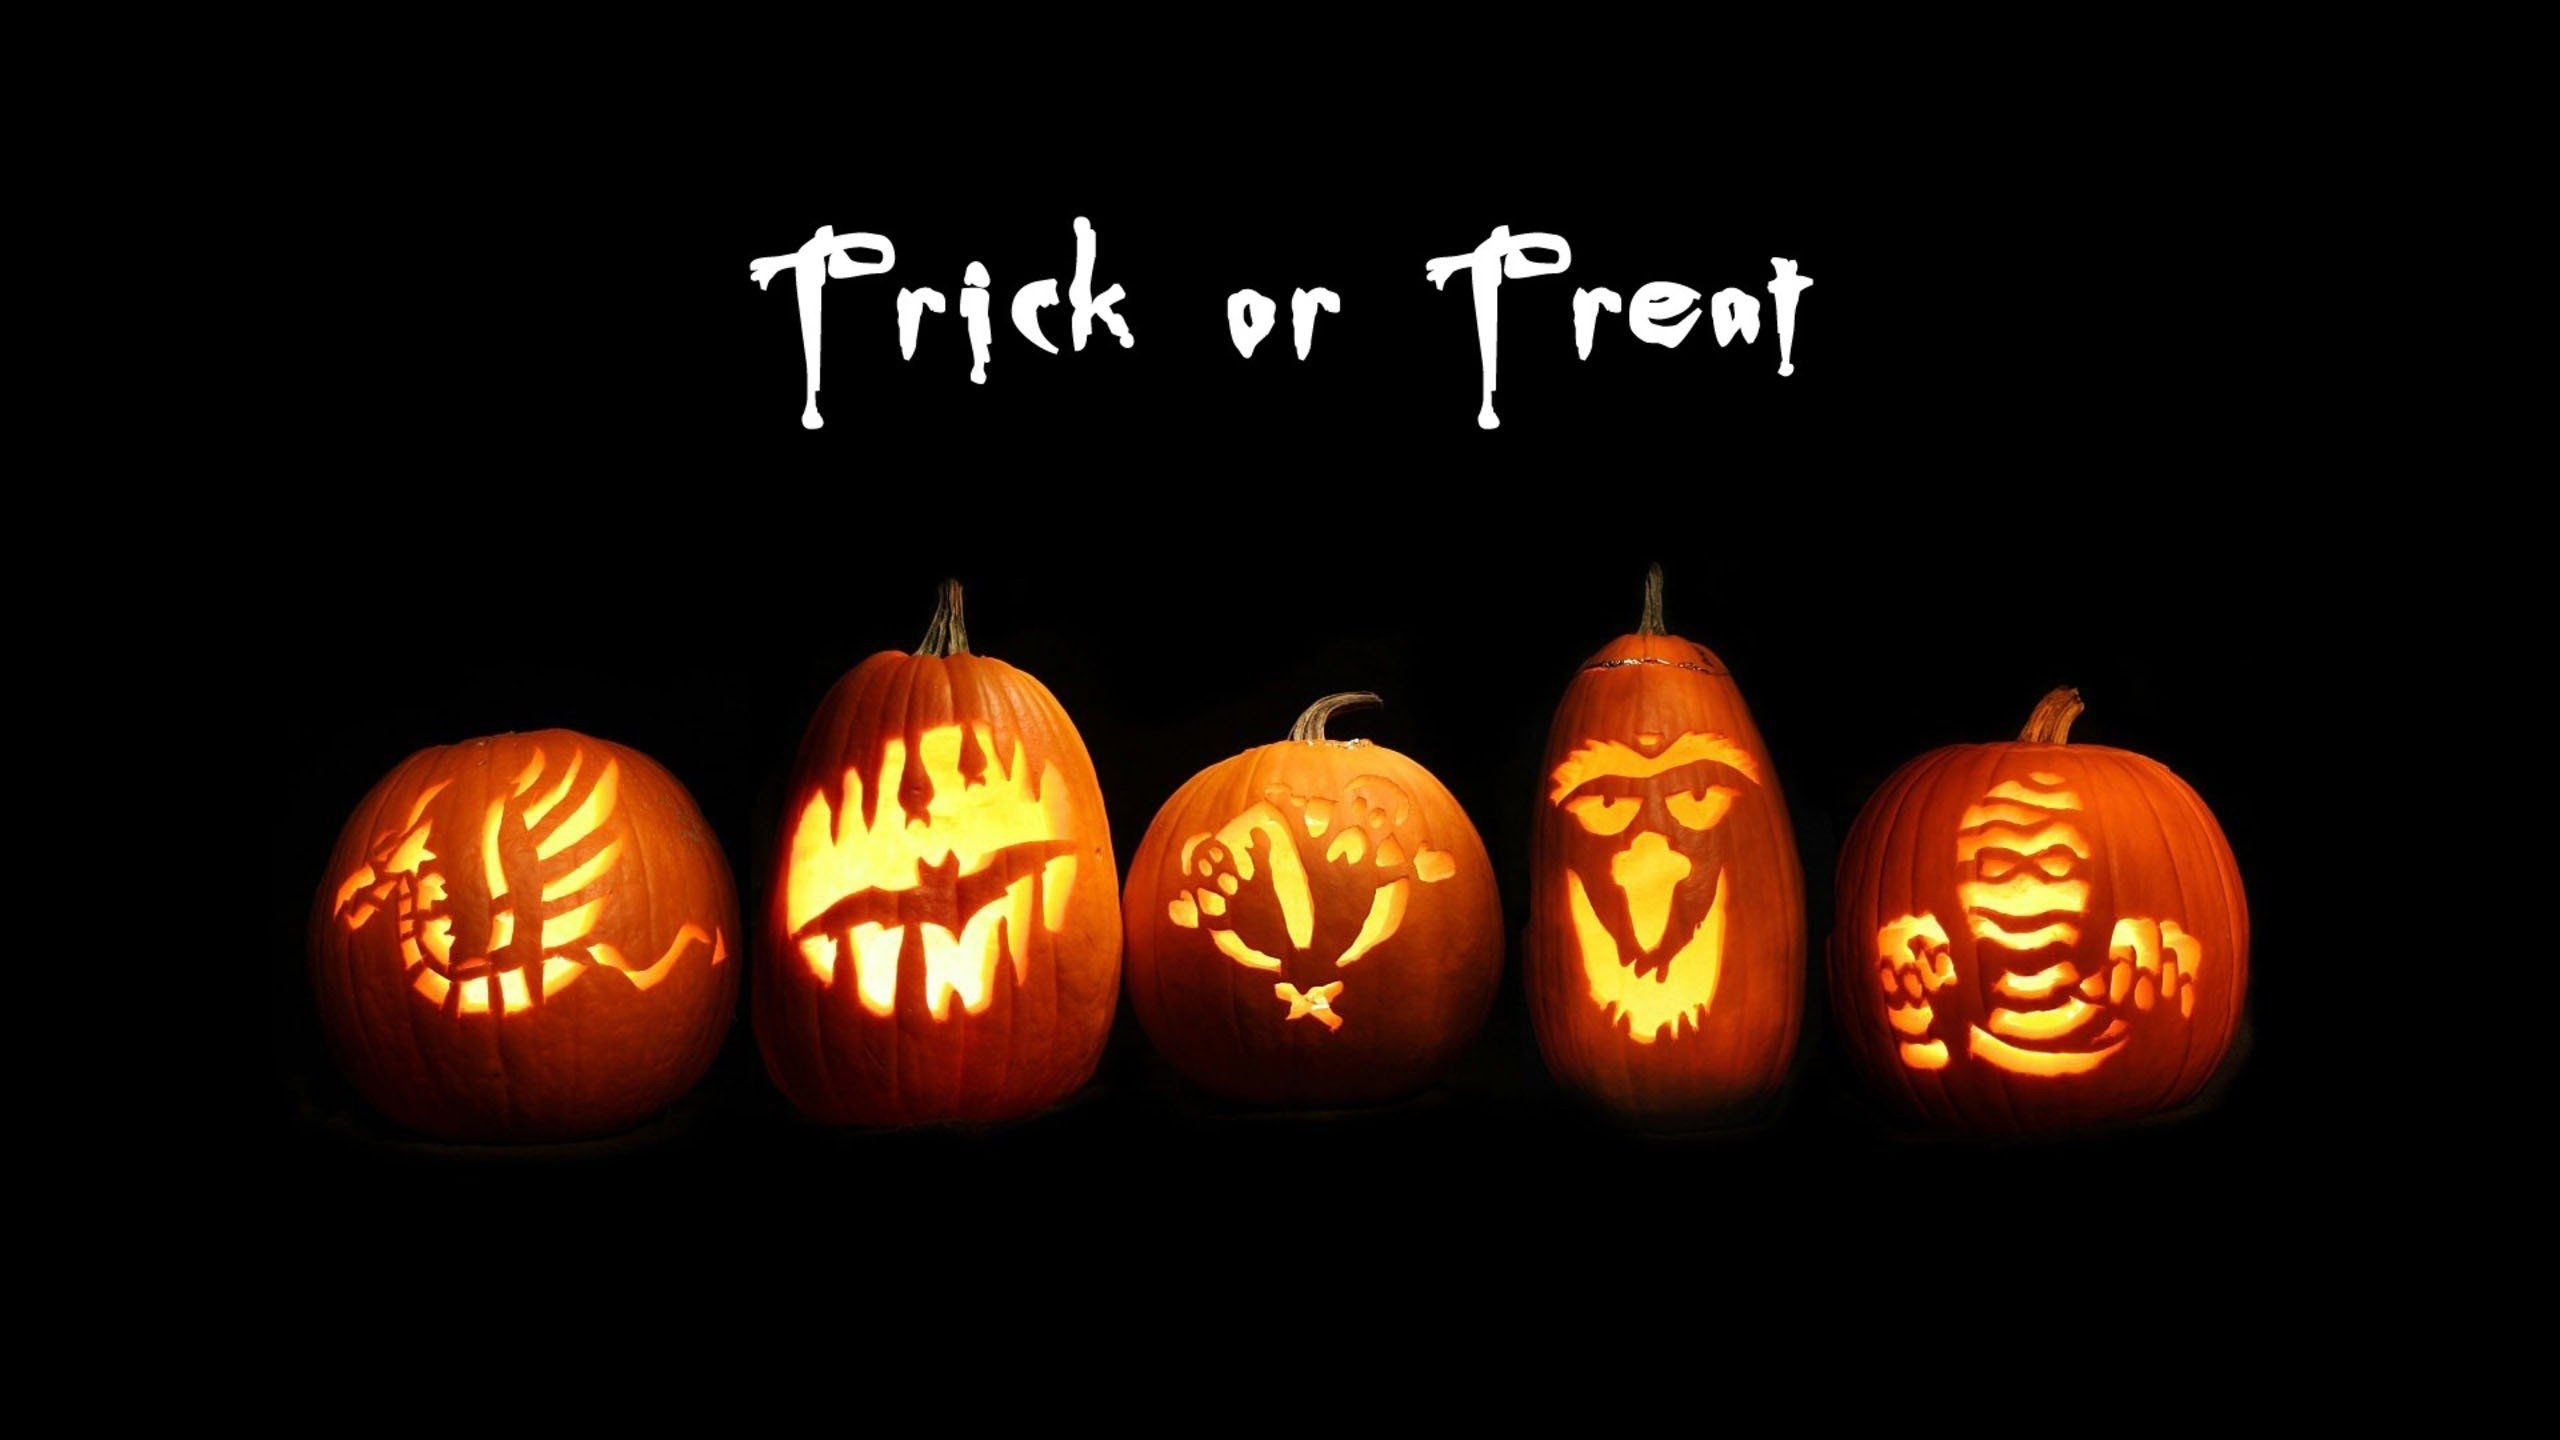 trick or treat wallpaper - wallpapersafari | adorable wallpapers